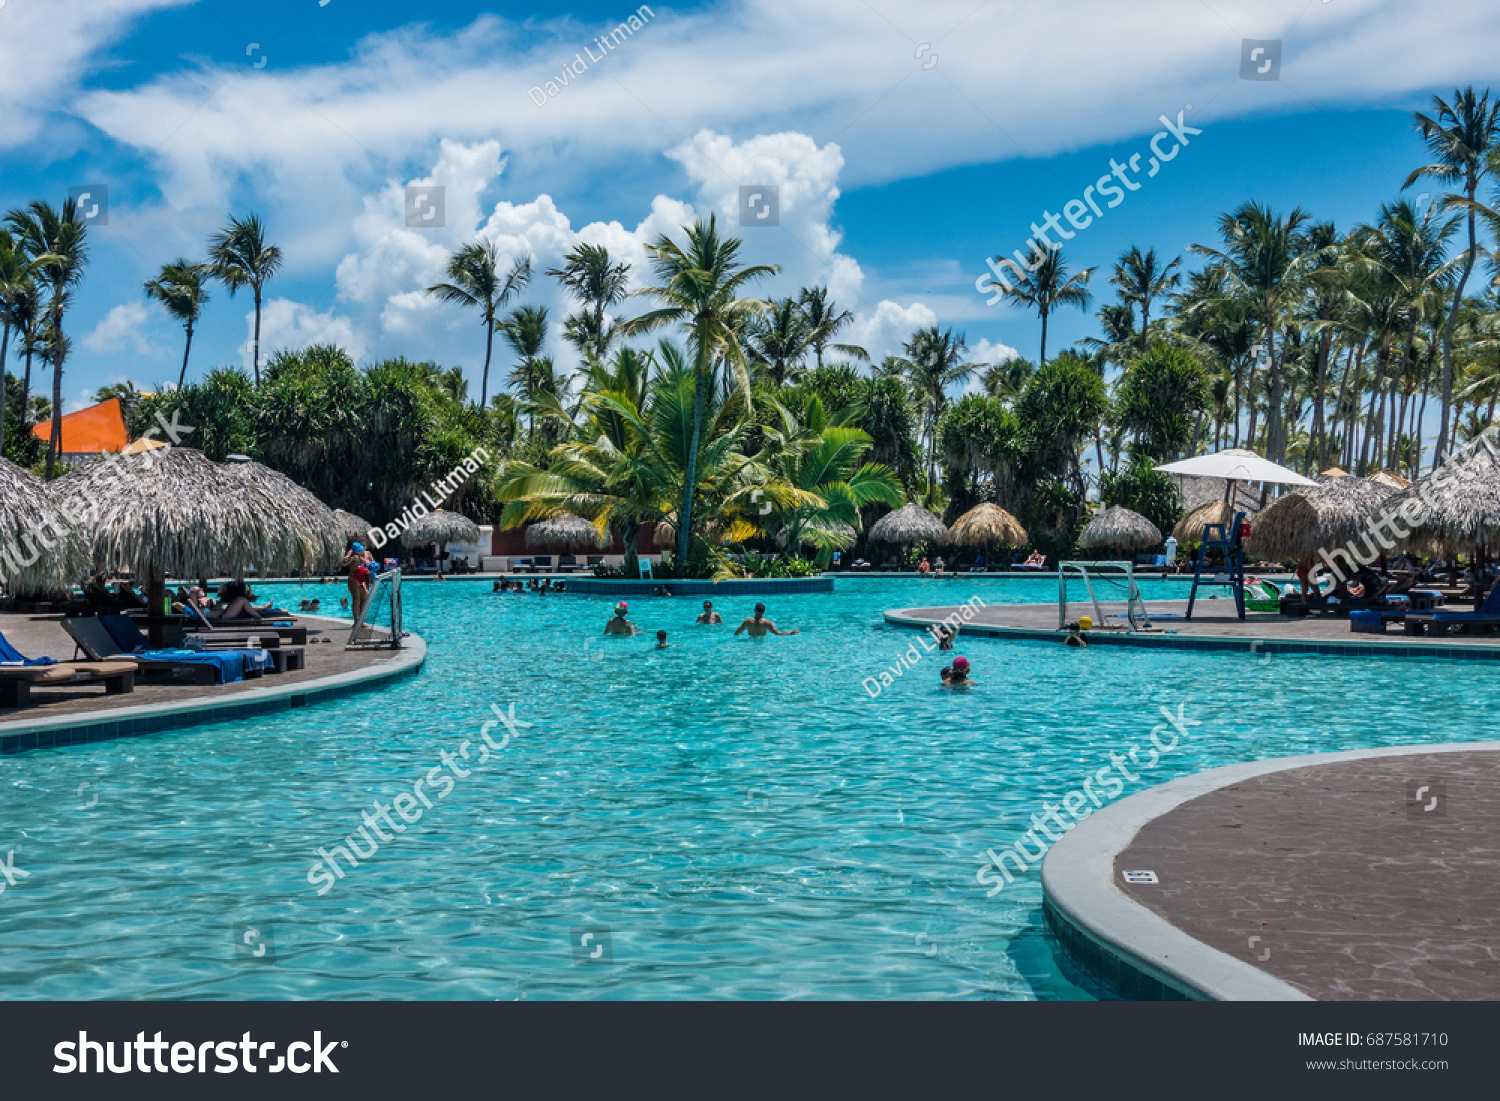 Punta Cana, Dominican Republic - July 26, 2017: People enjoy the pool area at a vacation resort (Club Med)on a partly cloudy summer day along the Caribbean Sea.